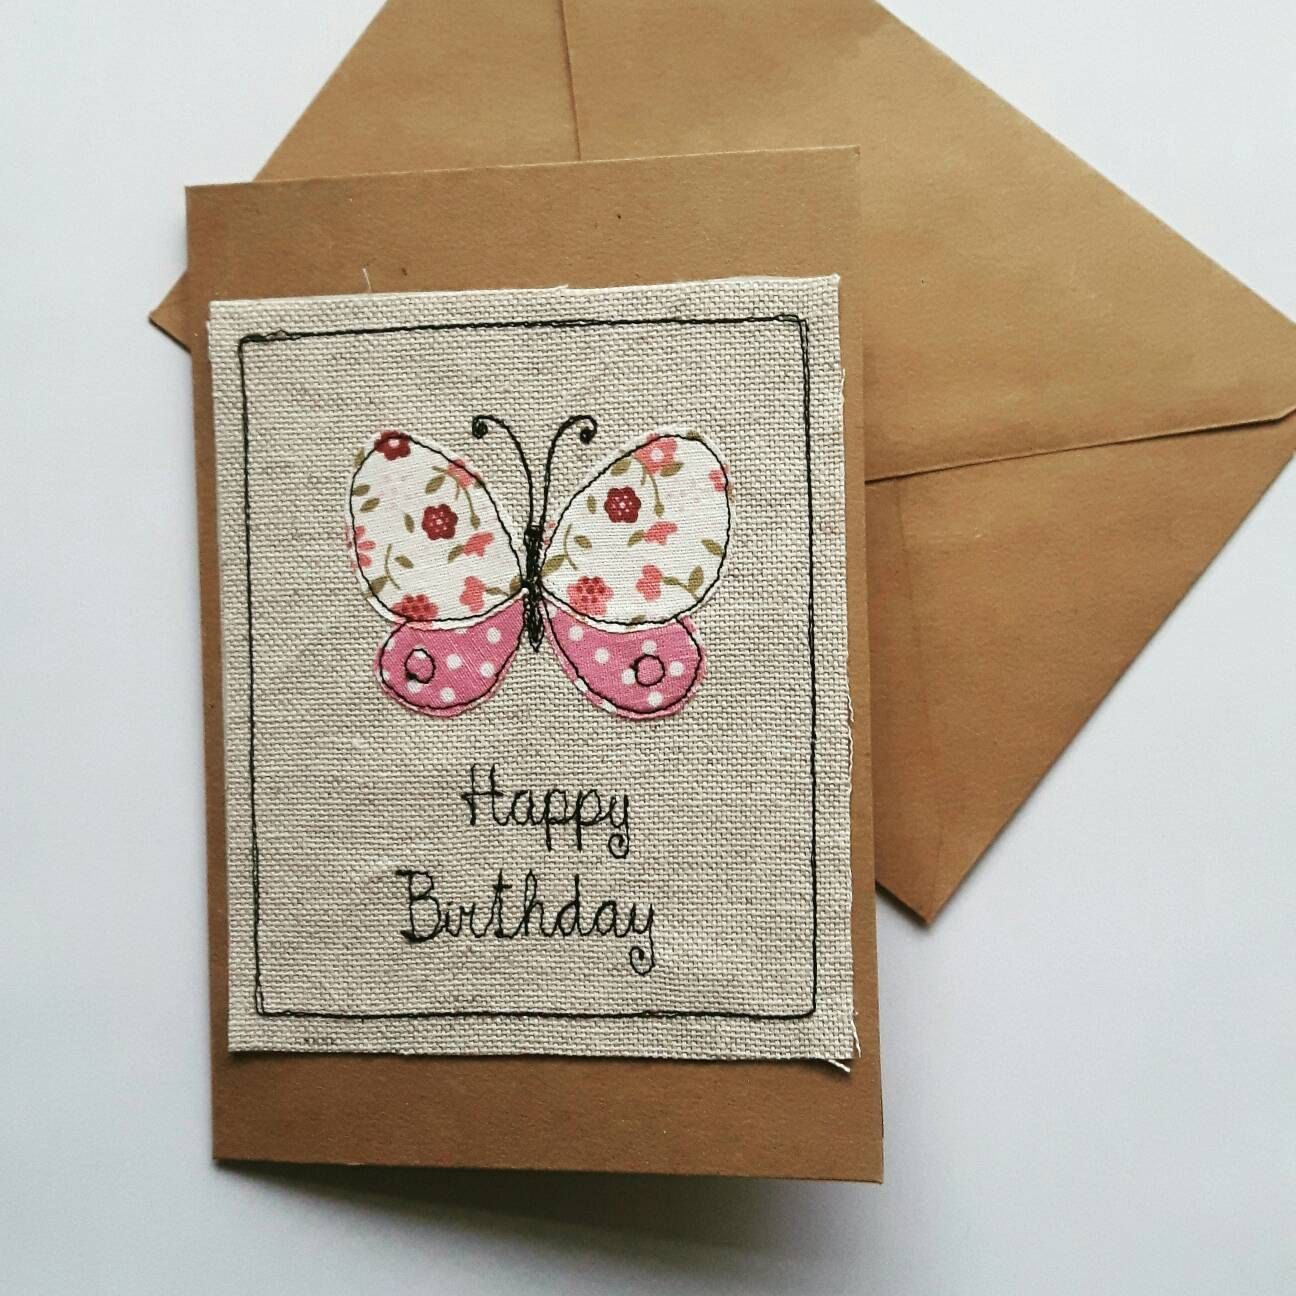 Happy birthday fabric butterfly applique card butterfly fabric happy birthday fabric butterfly applique card butterfly fabric greeting card free motion embroidery kristyandbryce Image collections